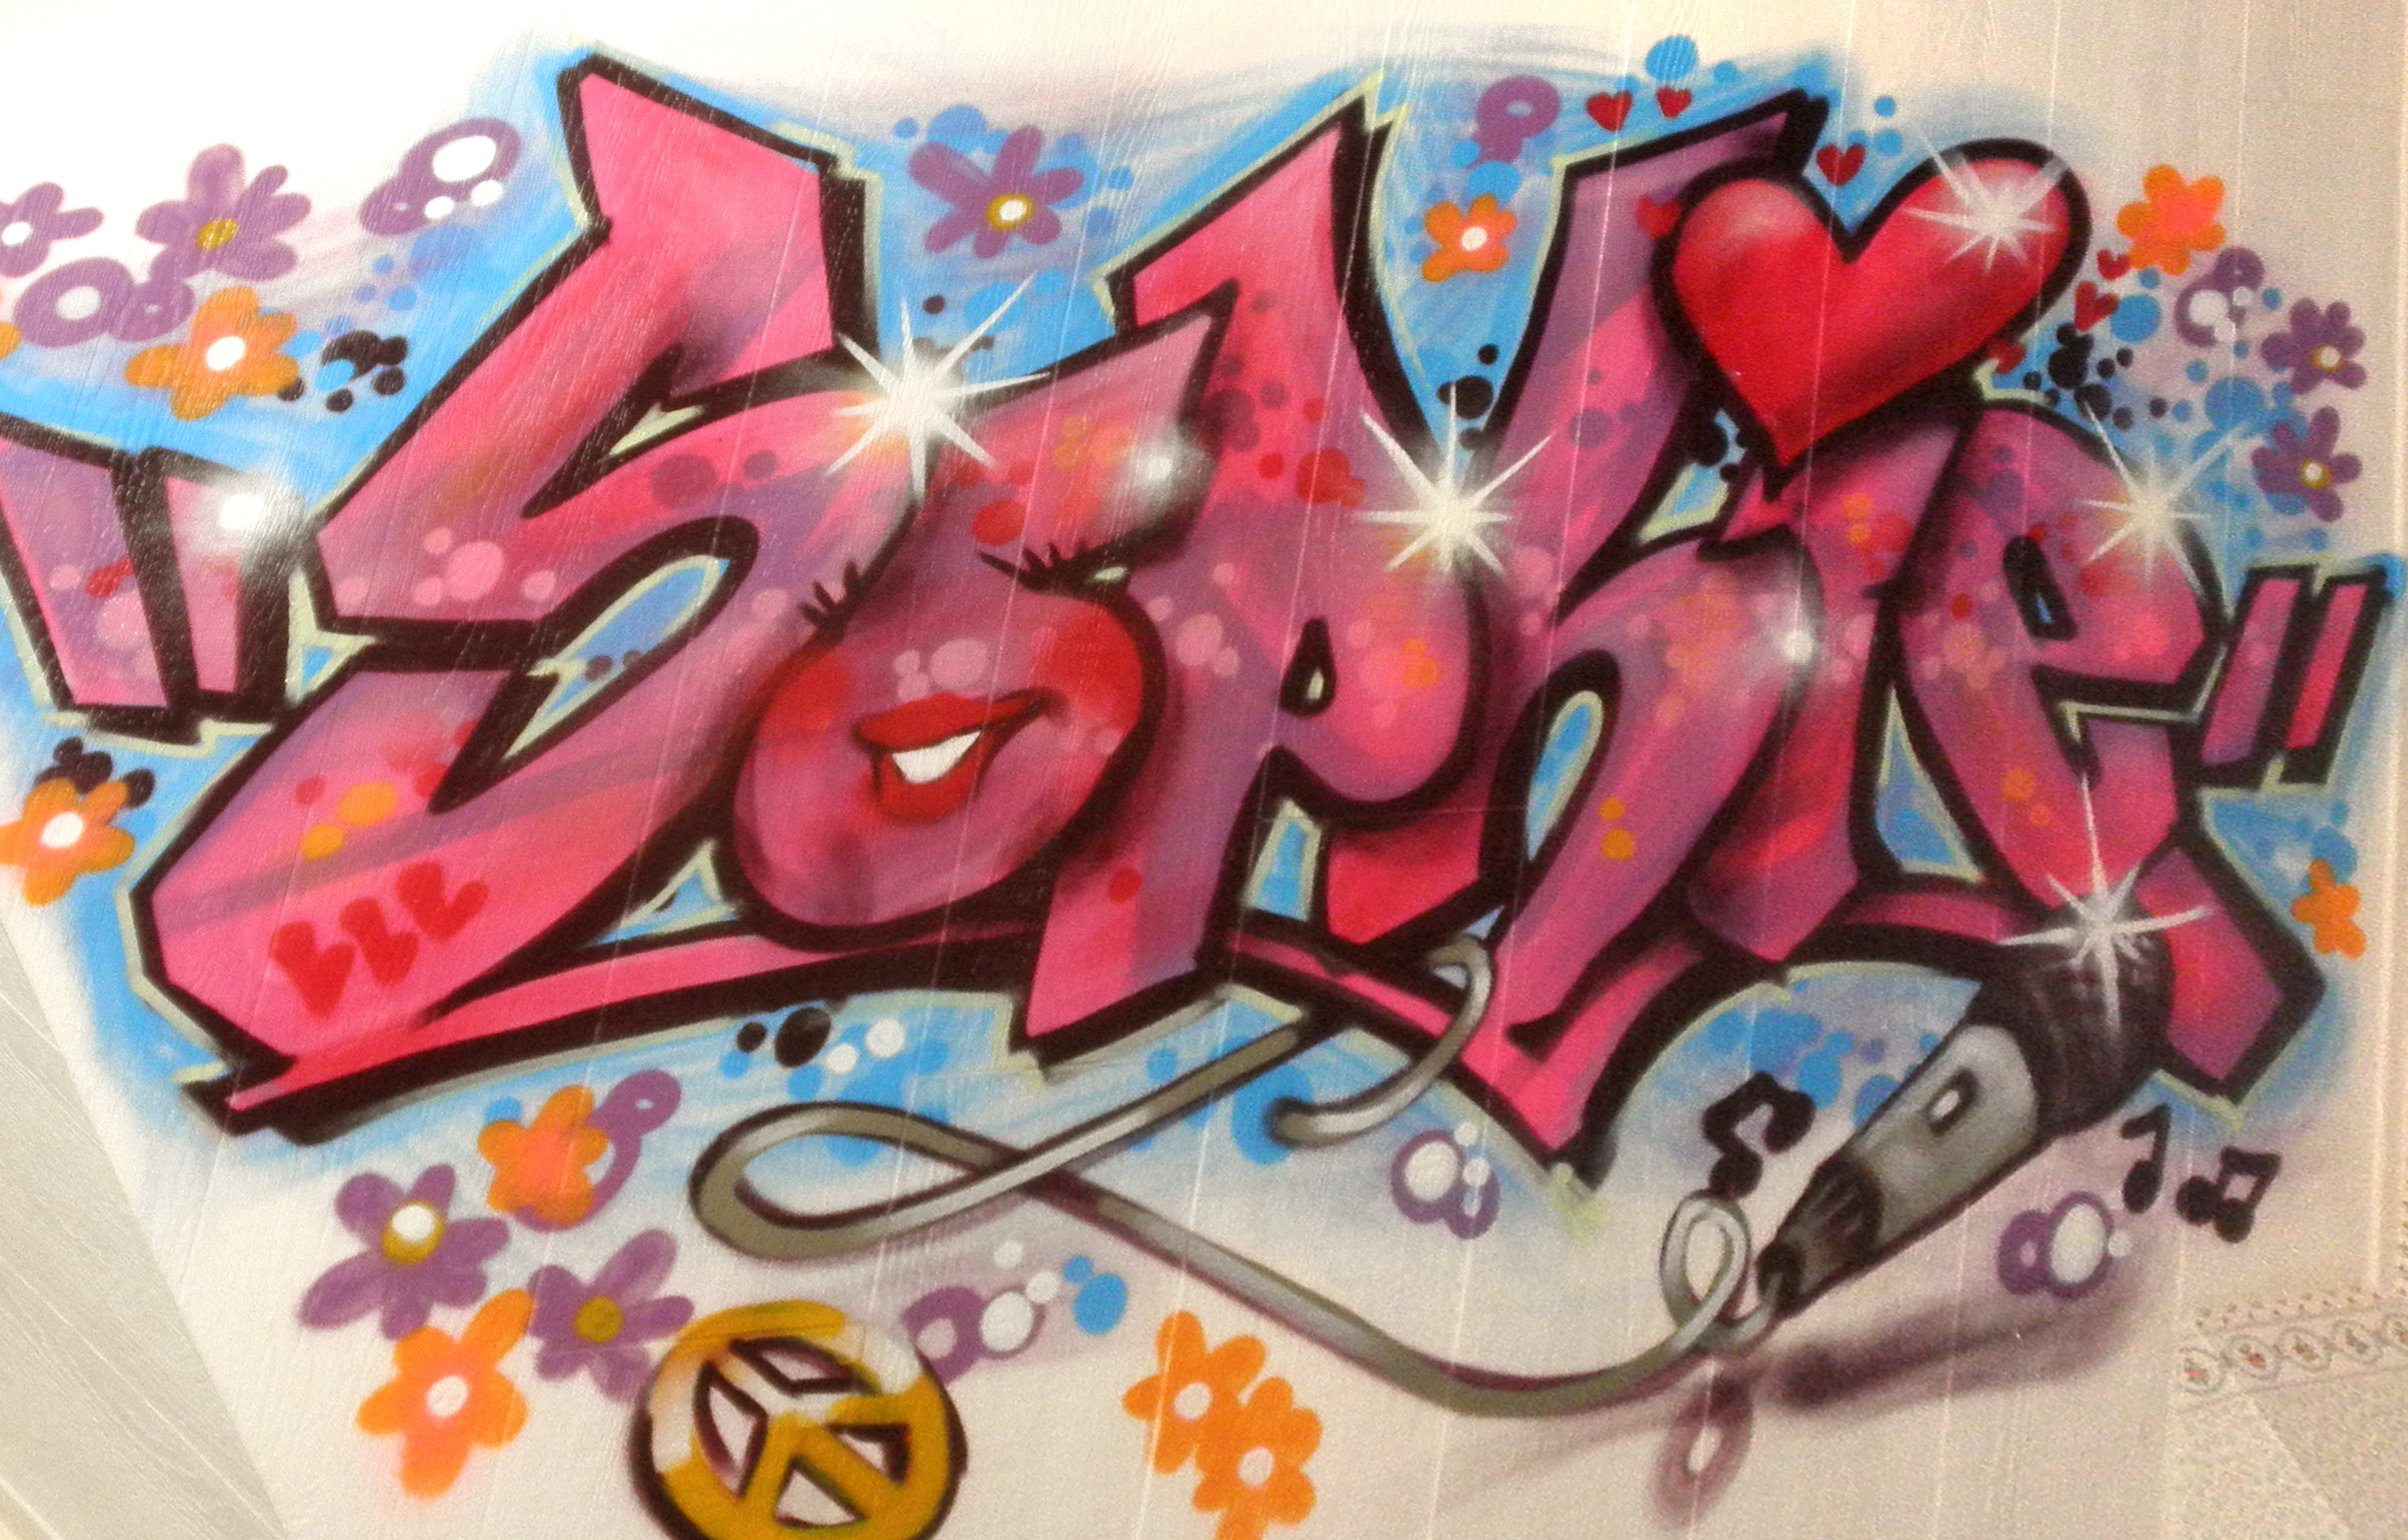 48+ Awesome Graffiti & SprayPaint Stencils for your Inspiration!